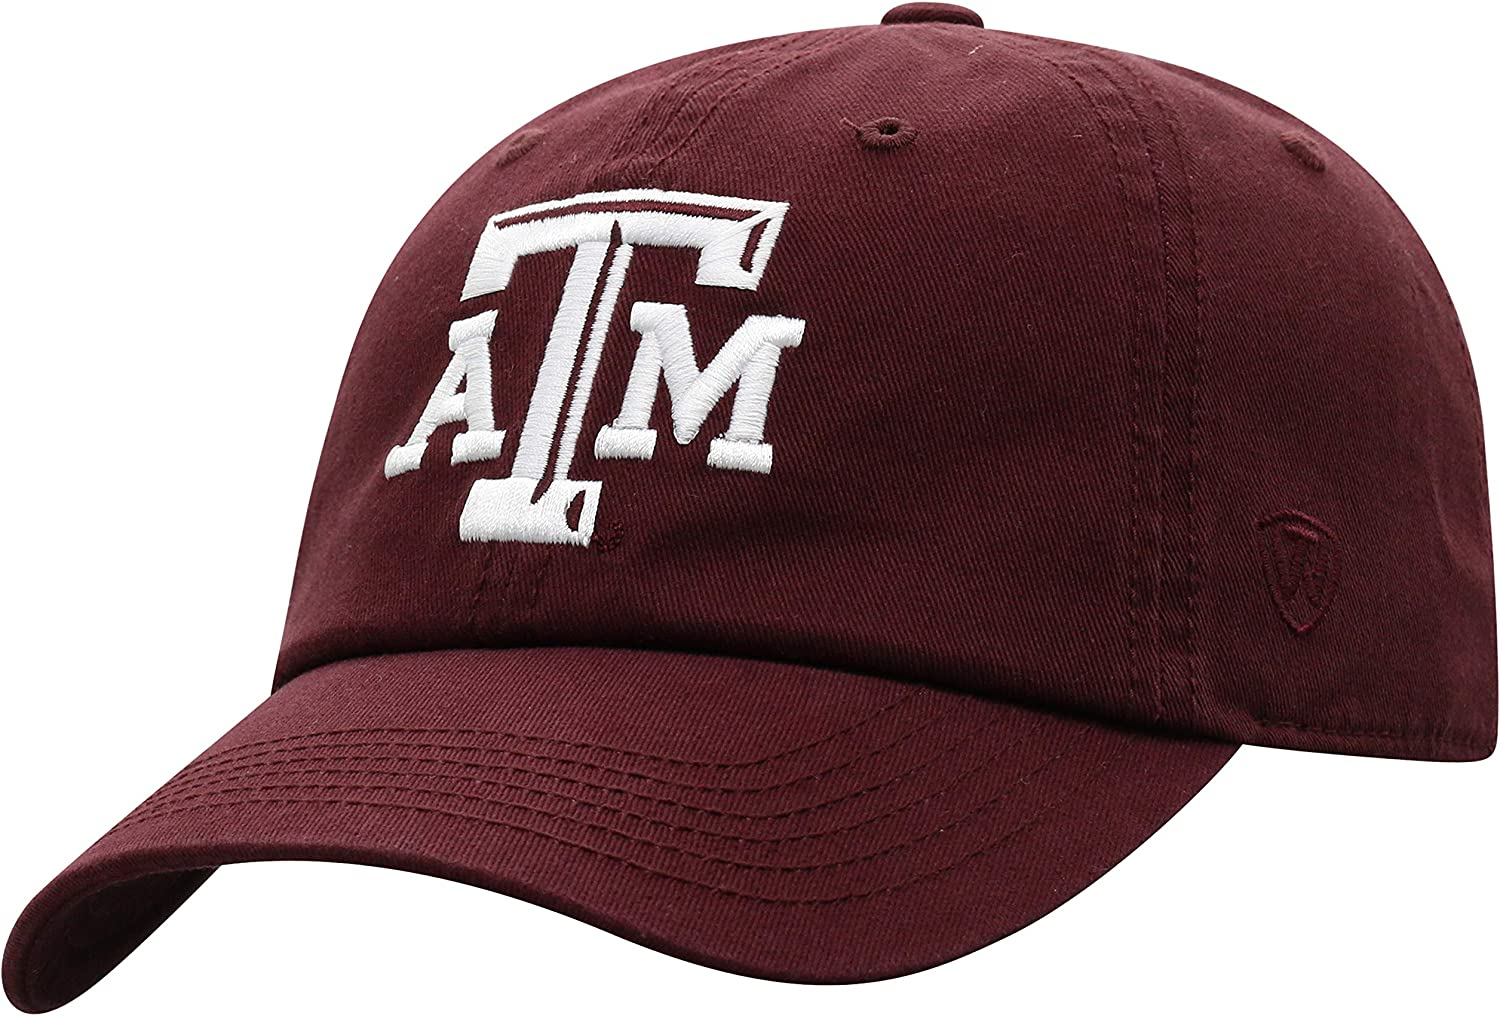 Top of the World NCAA Mens Hat Adjustable Relaxed Fit Team Icon Hat